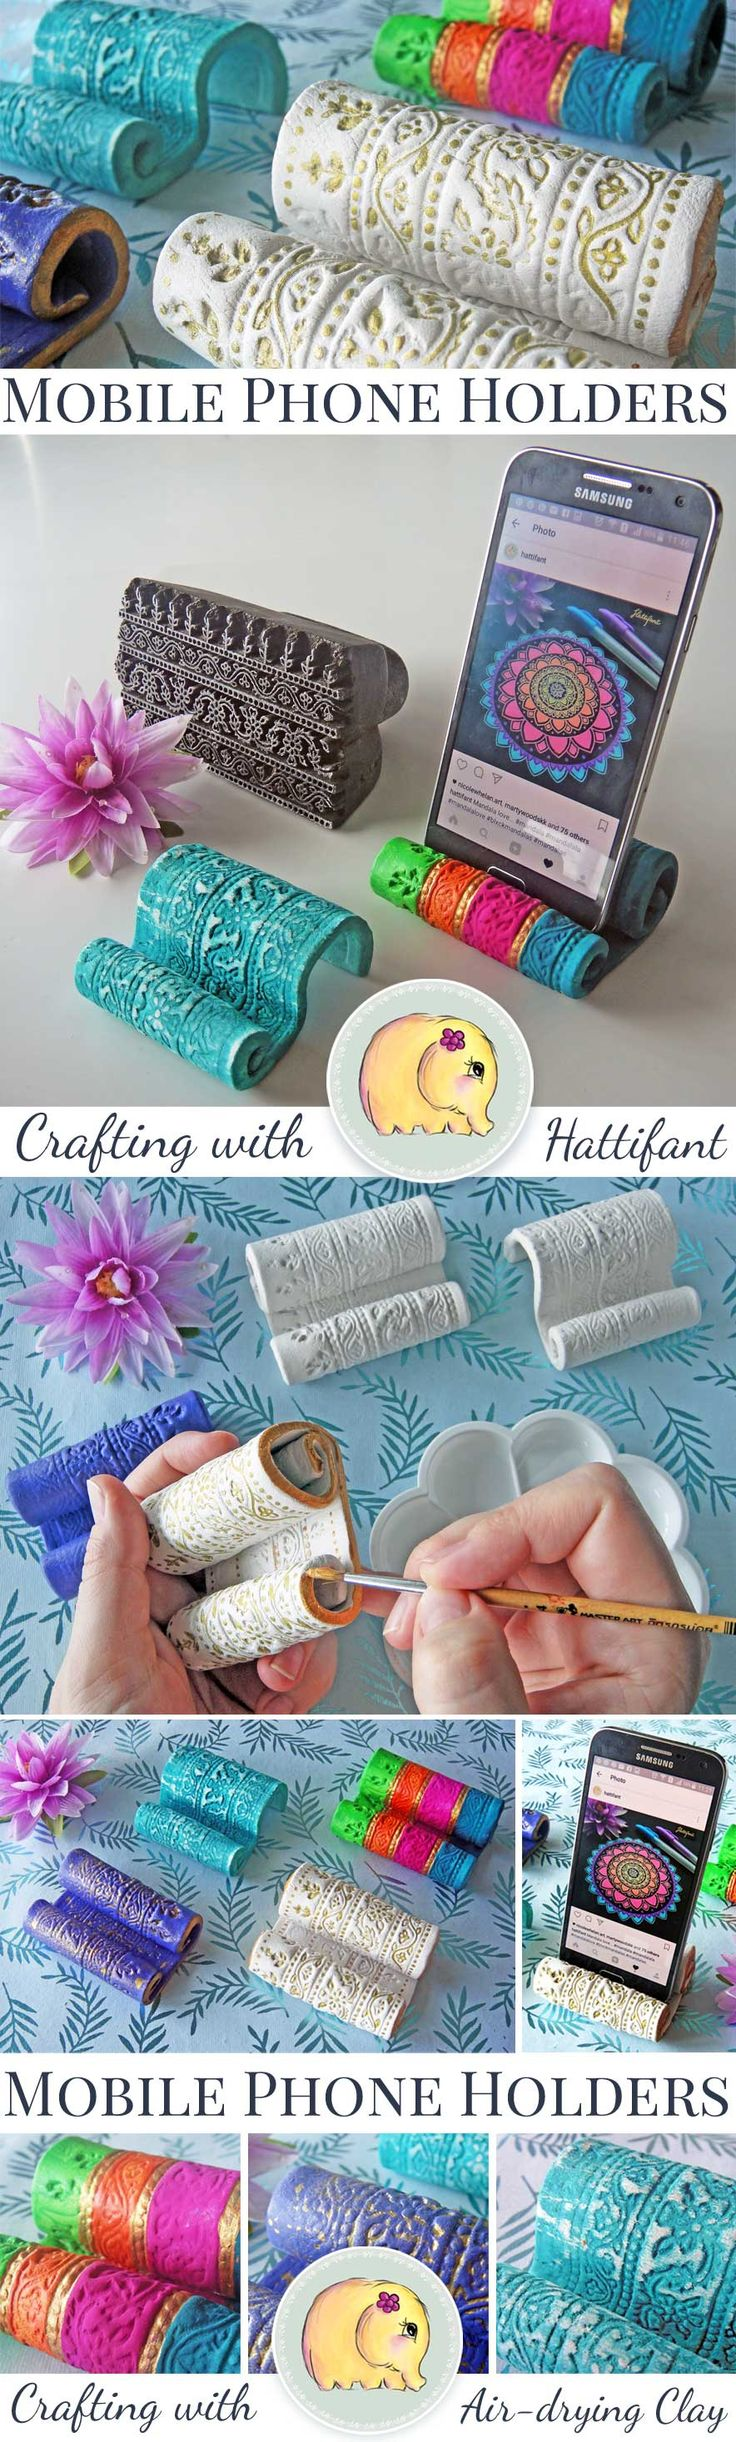 Hattifant's Tutorial for DIY Clay Mobile Phone & Cell Phone Holders. Coloring, Colouring, Crafting, kids craft, grown up craft, adult craft, decor, décor, DIY Home